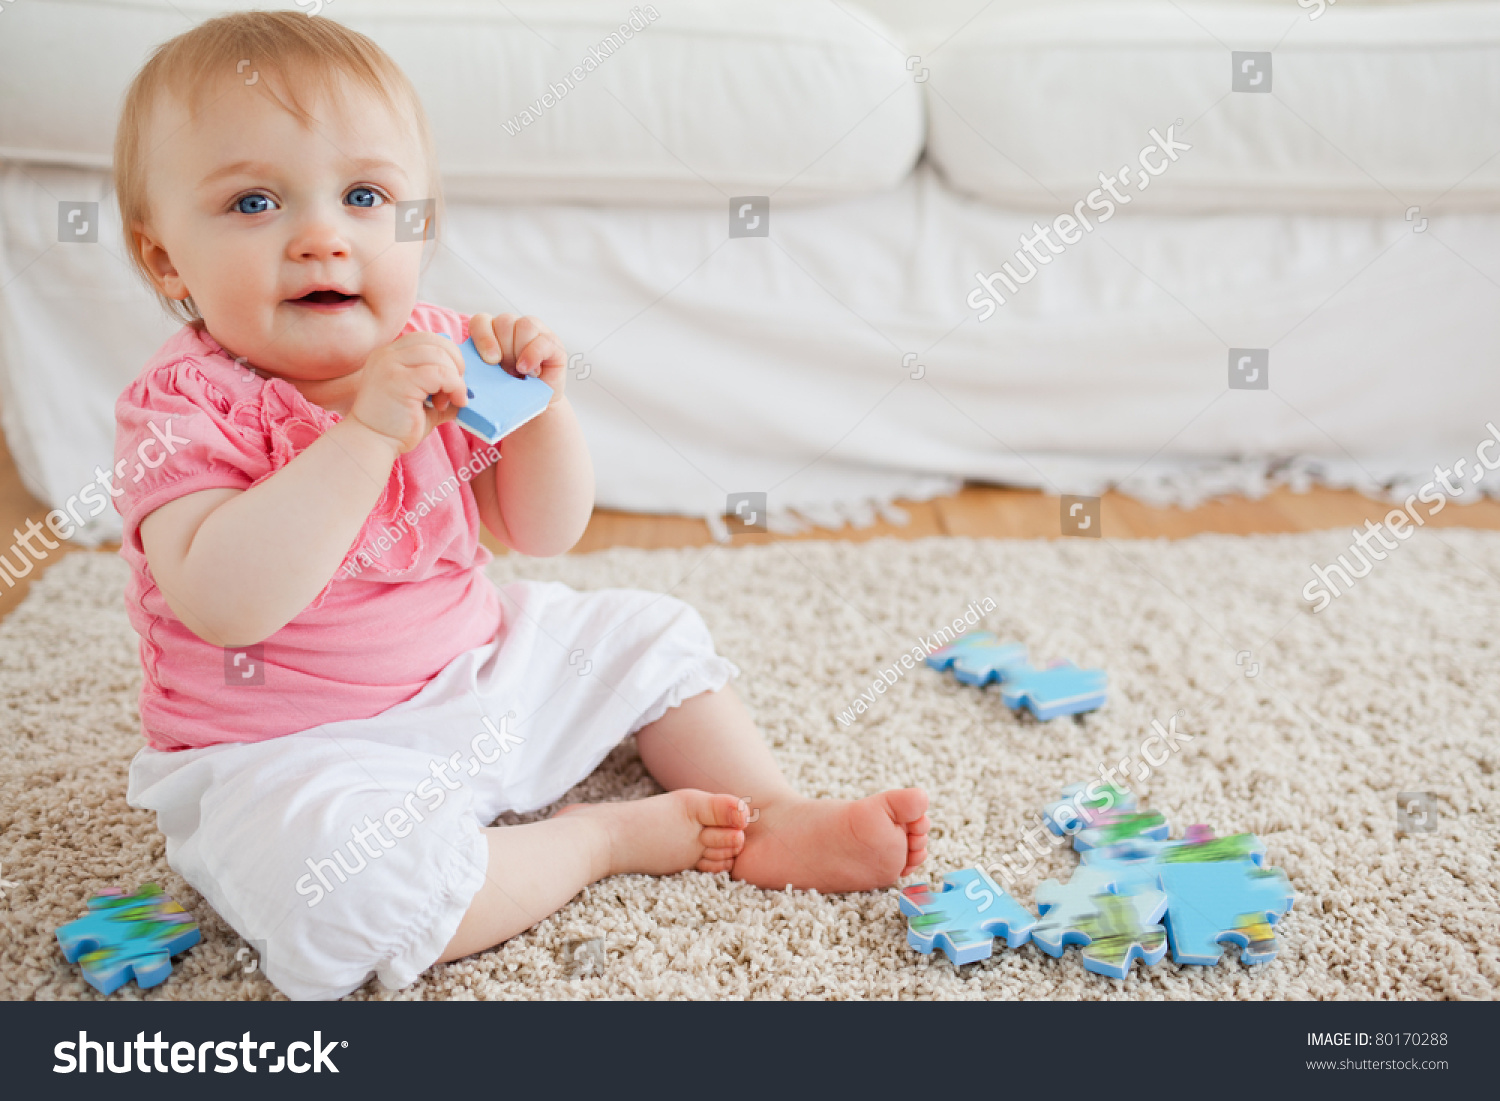 Cute Blond Baby Playing With Puzzle Pieces While Sitting On A Carpet In The Living Room Stock